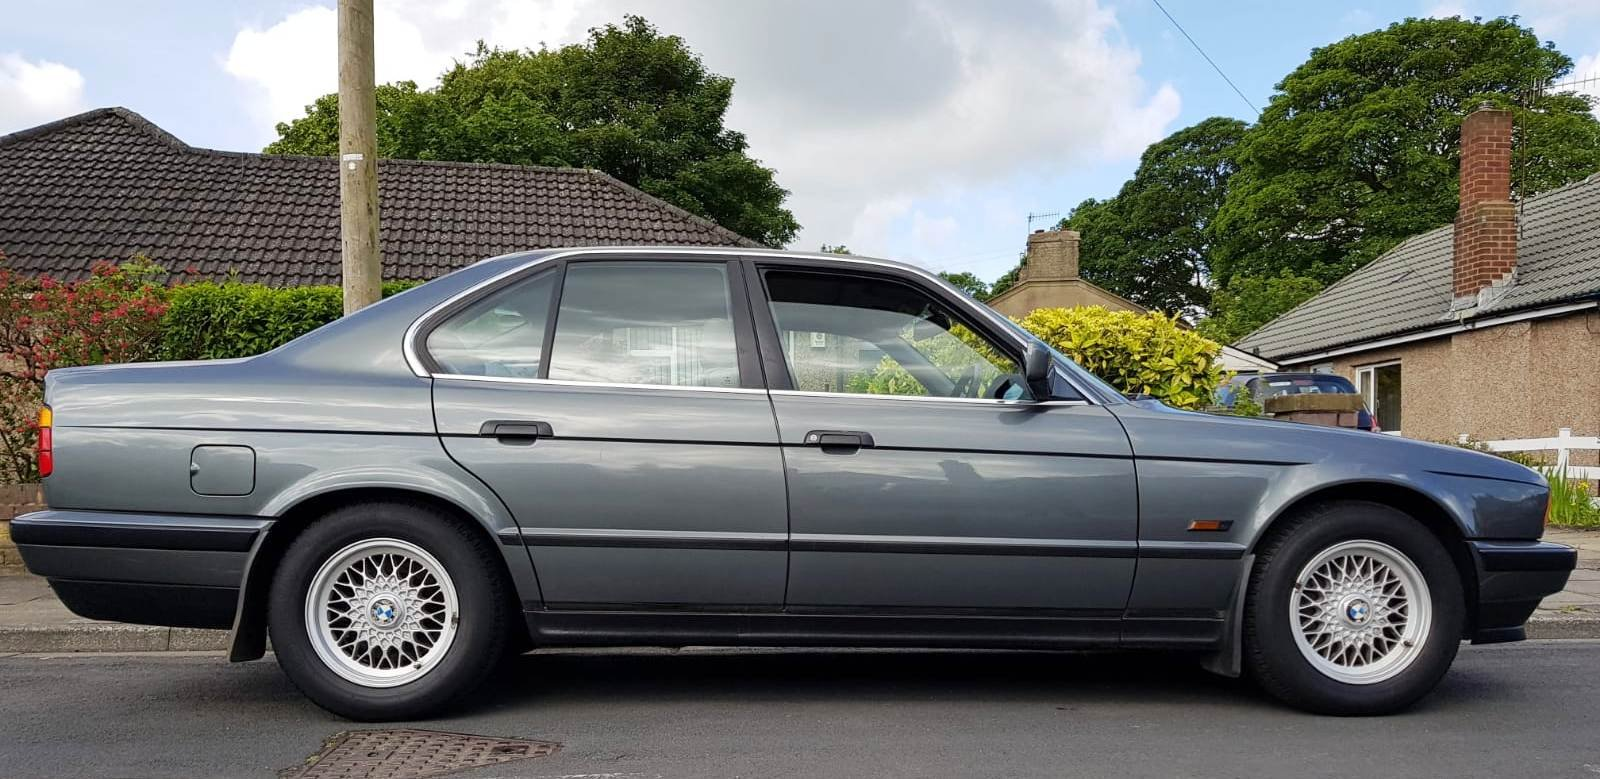 1989 BMW 520i E34. 1 PREVIOUS OWNER & ONLY 20,300 MILES For Sale (picture 1 of 6)